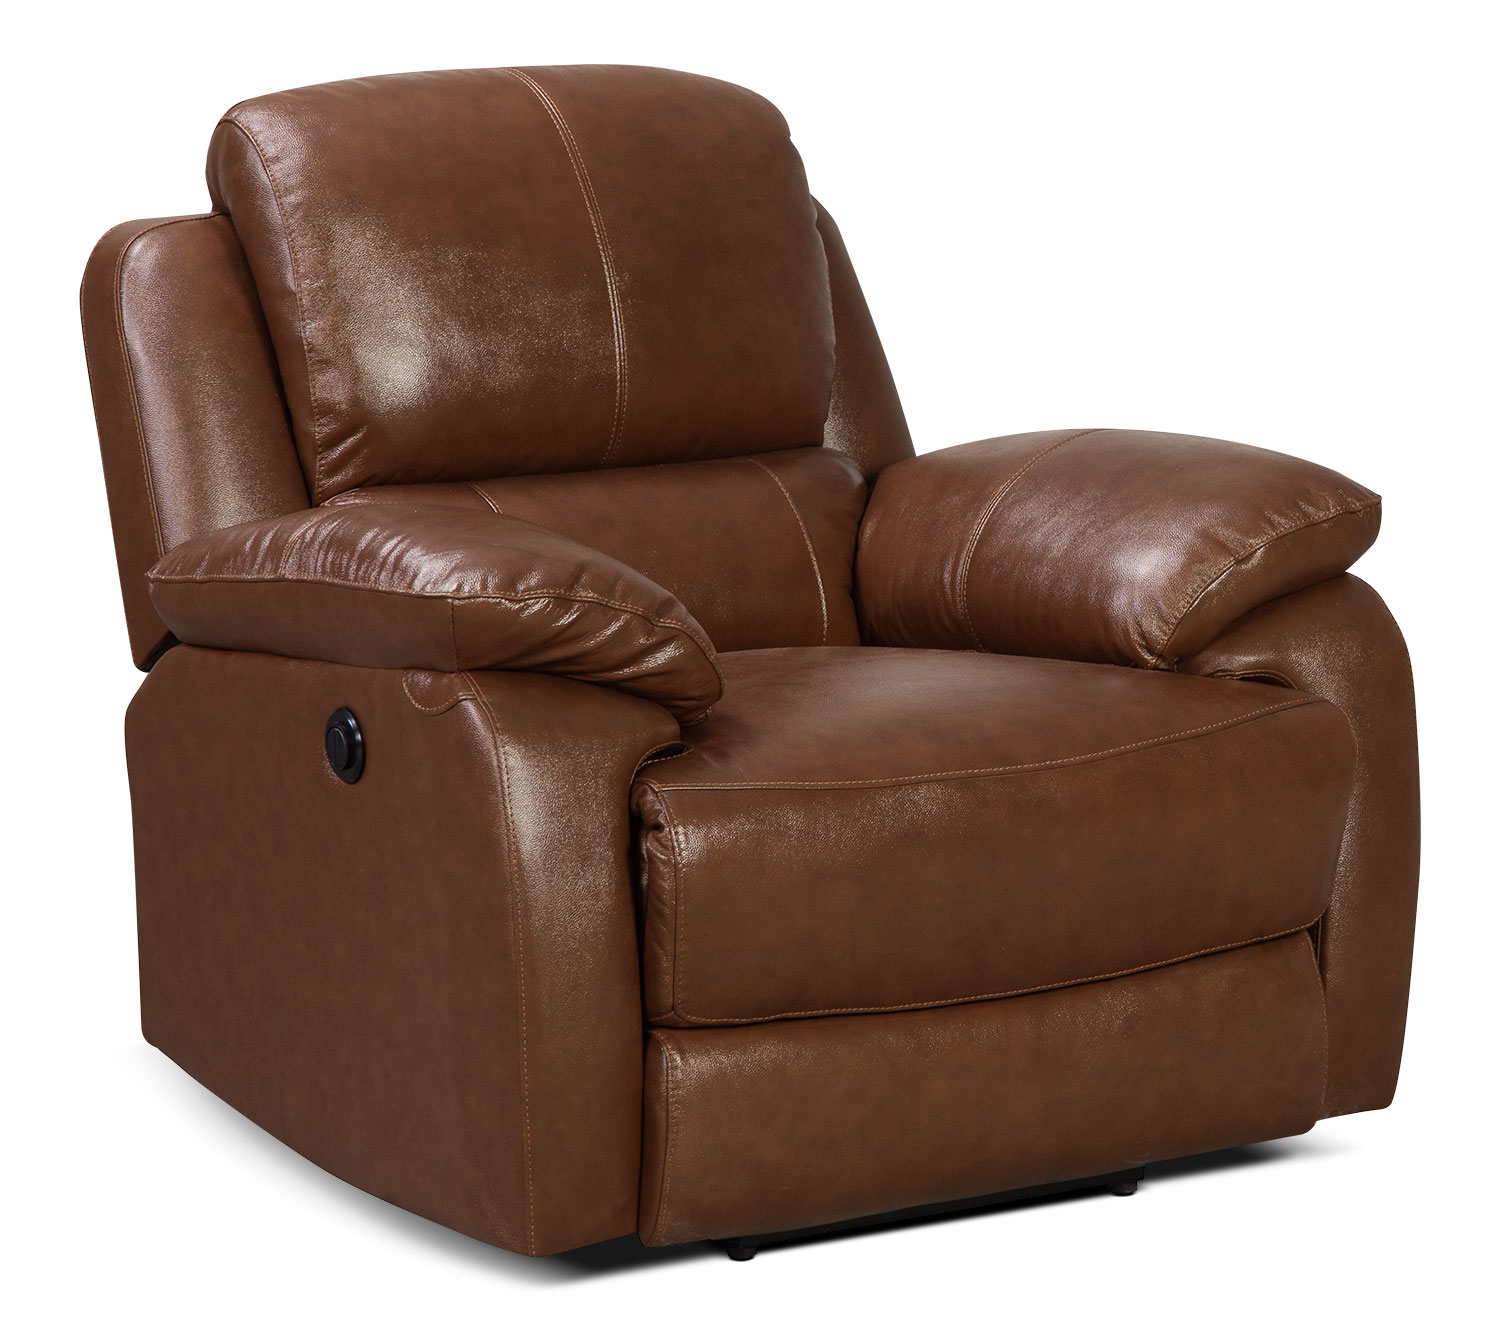 Cairo Genuine Leather Power Reclining Chair – Brown